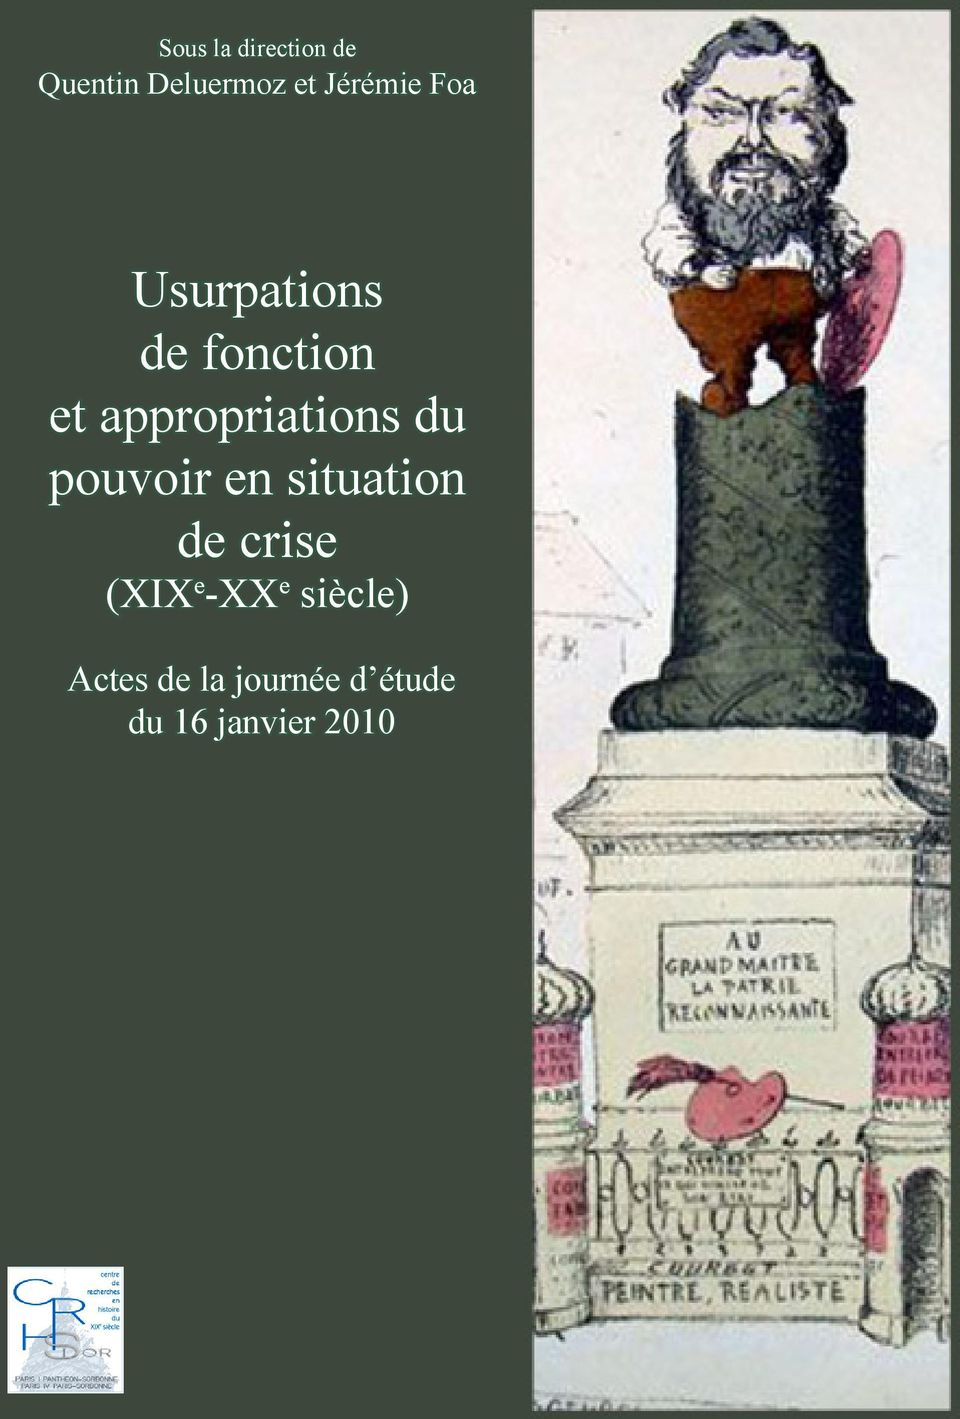 appropriations du pouvoir en situation de crise